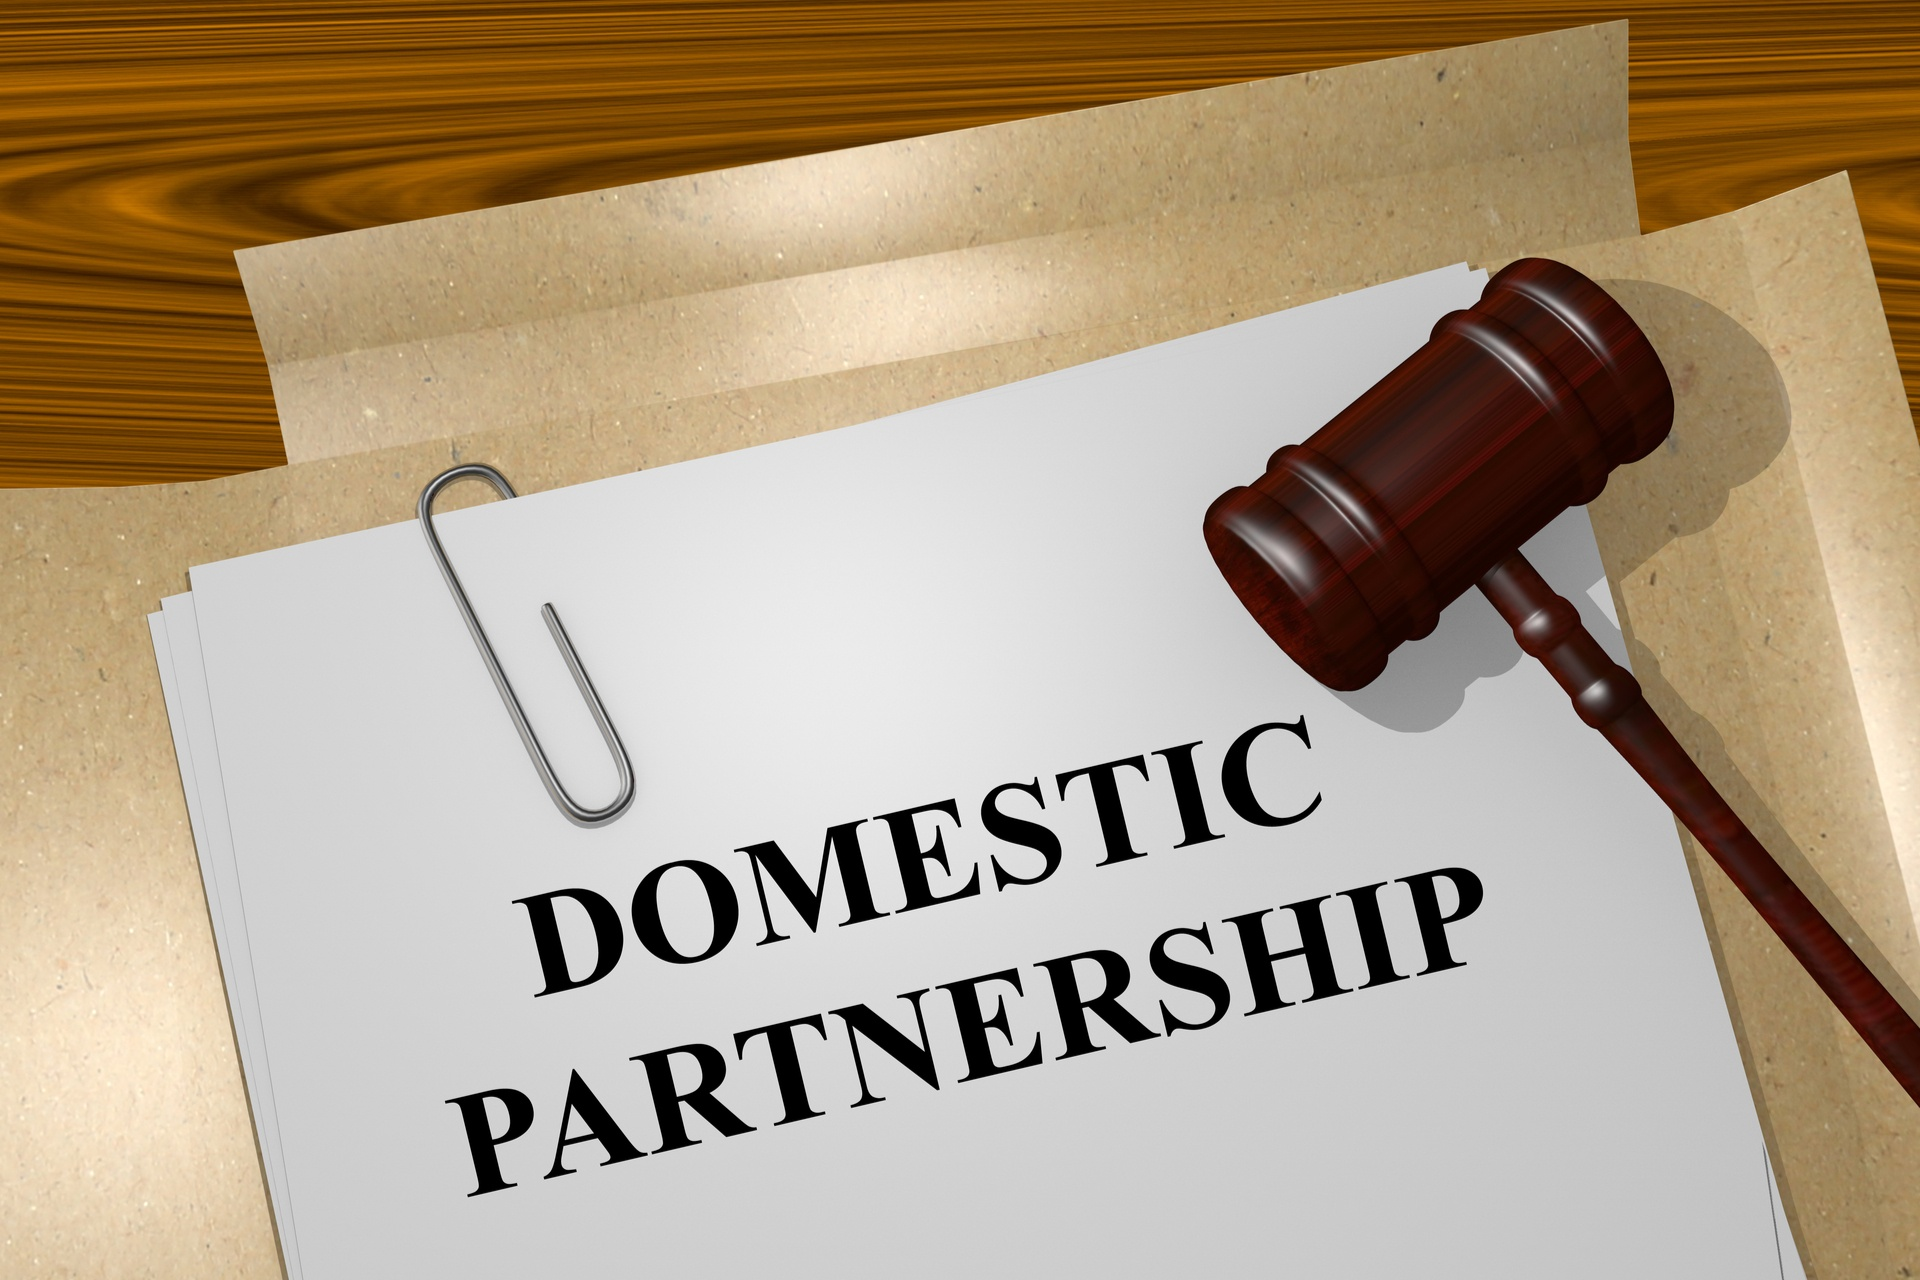 Wisconsin Public Sector employers will no longer offer domestic partner employee benefits